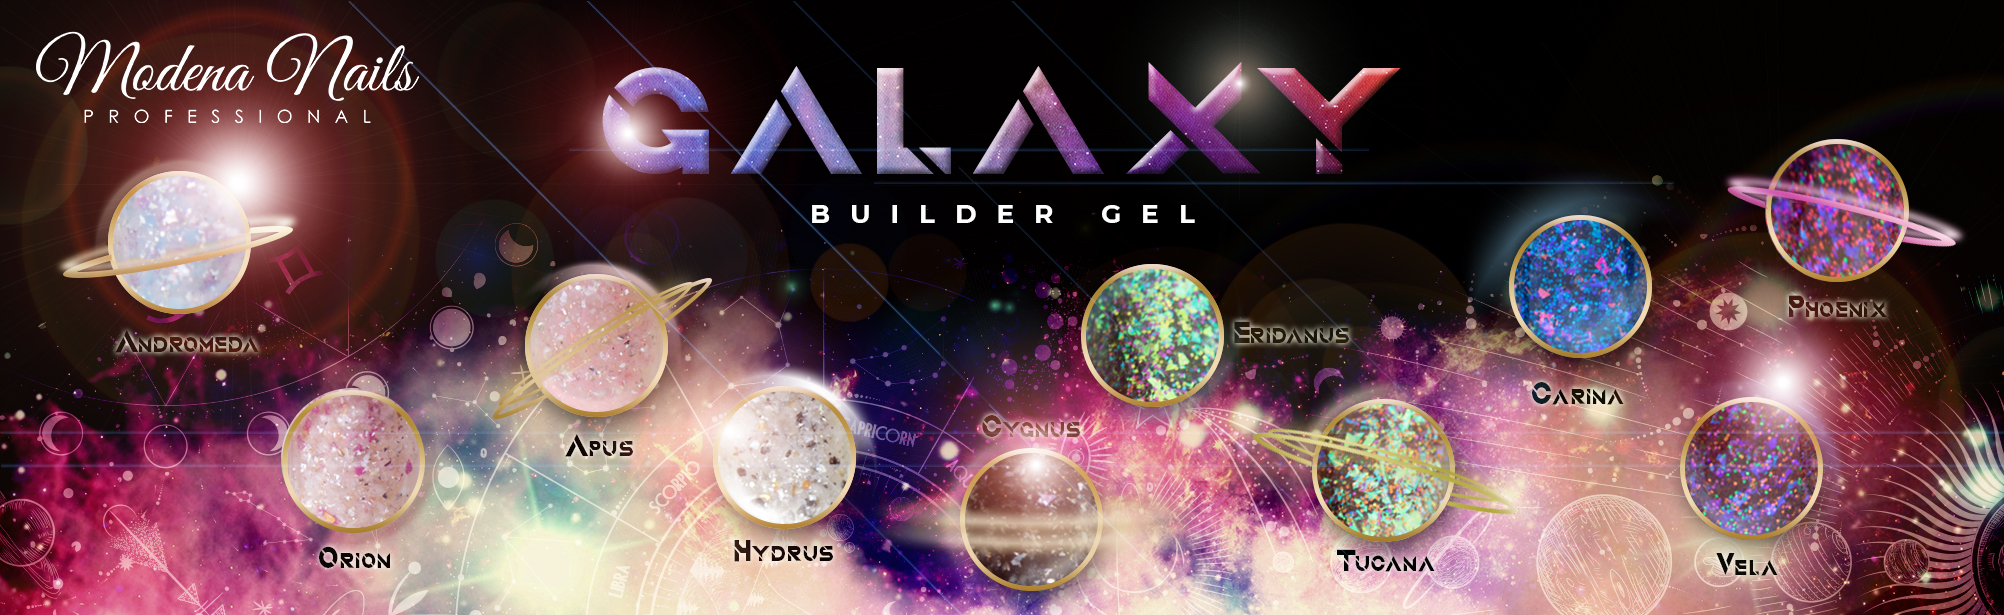 Galaxy Builder Gel